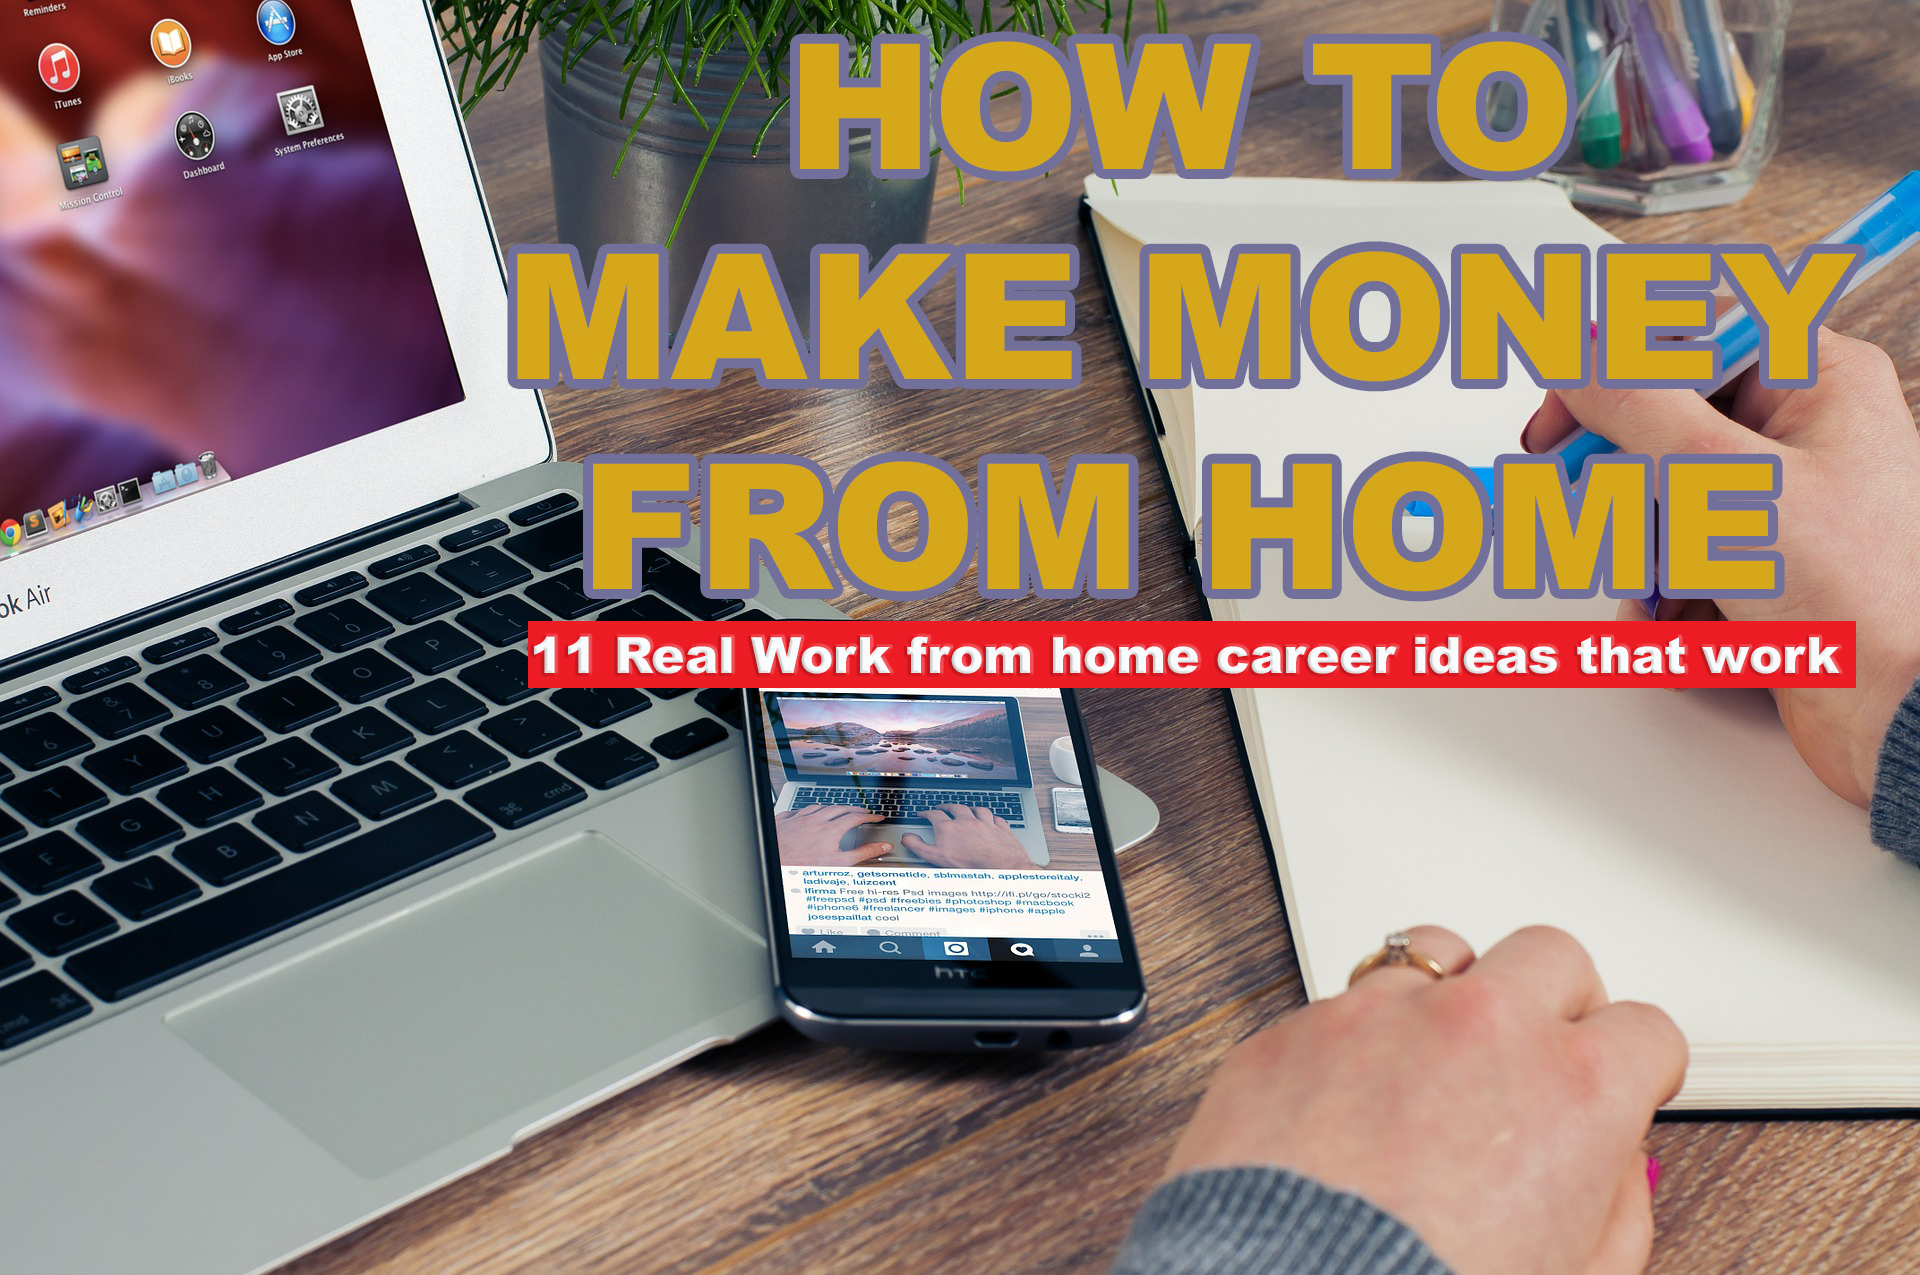 how to make money from home - 11 real work from home career ideas that work